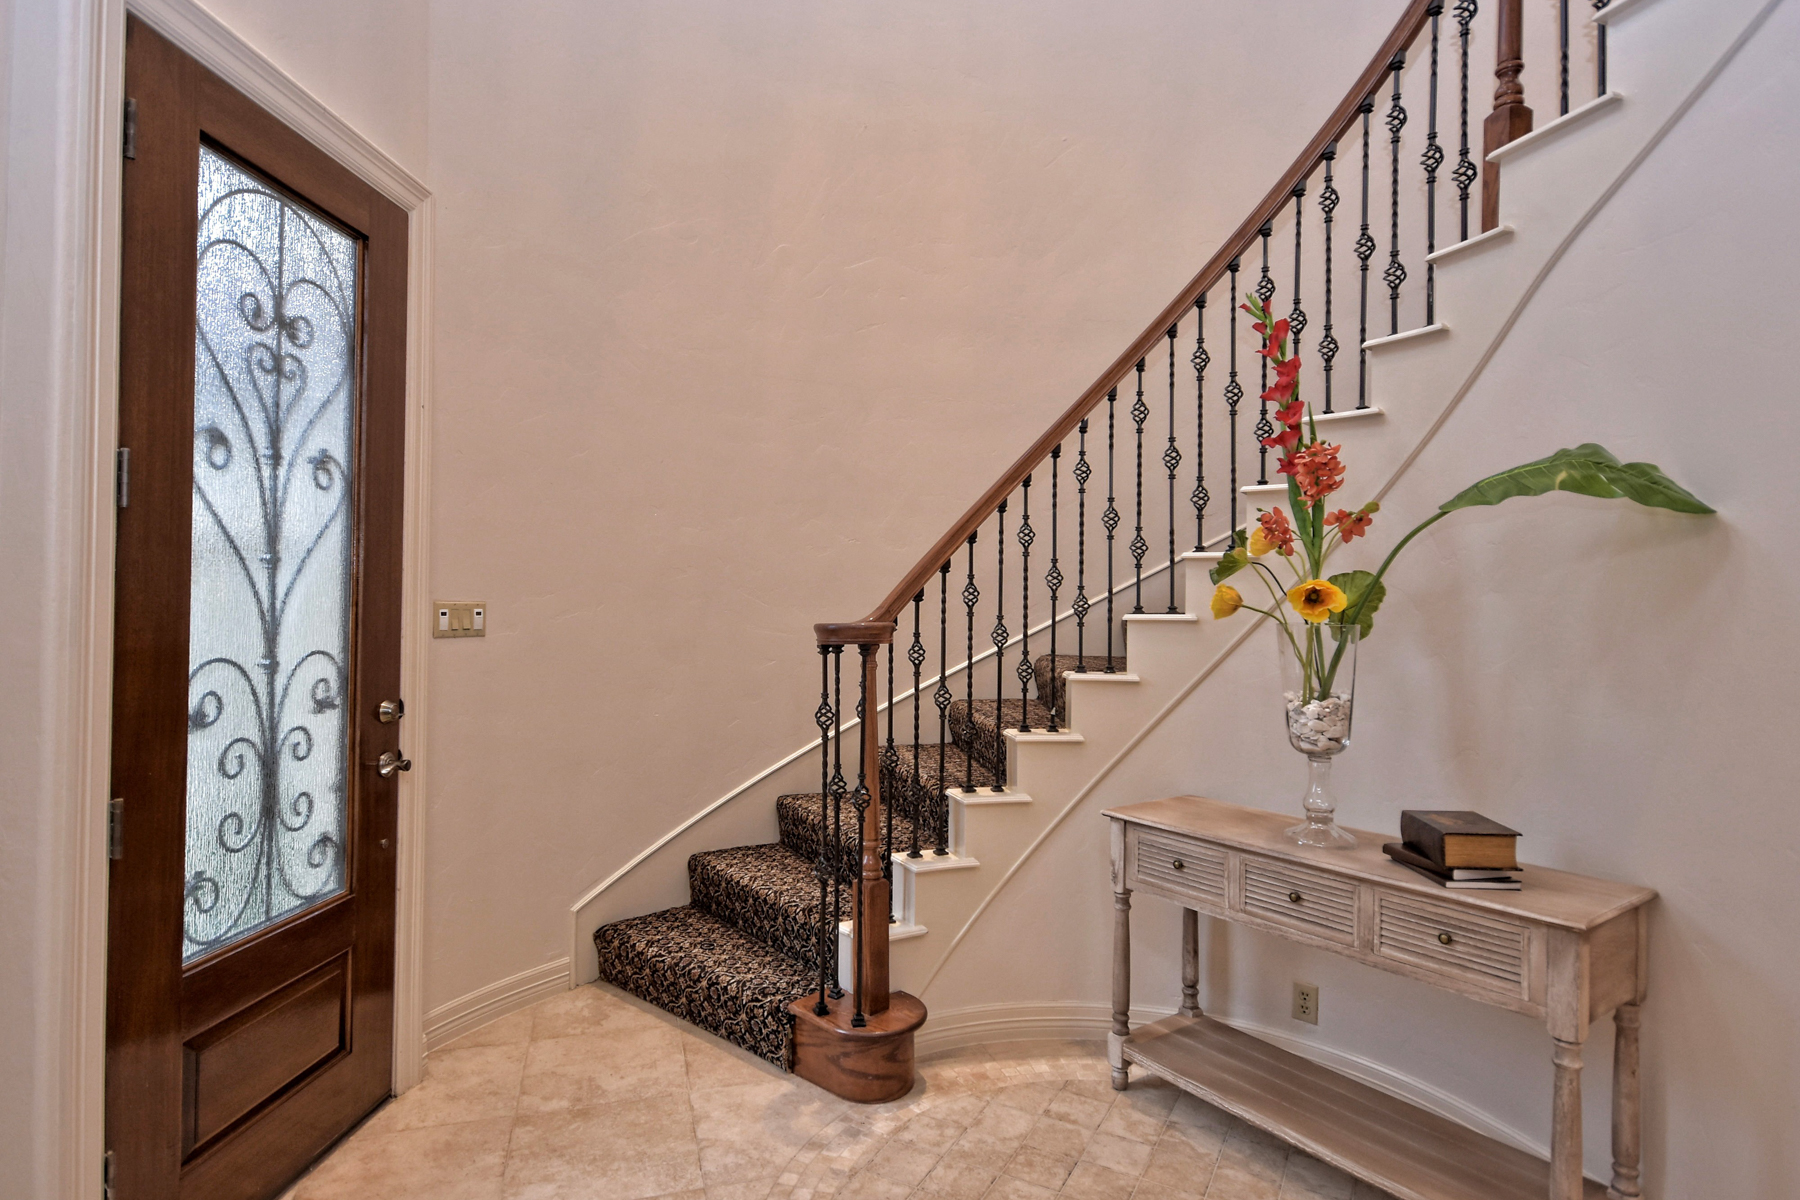 Additional photo for property listing at Luxurious and Gorgeous Home in The Dominion 8 Legends Ct San Antonio, Texas 78257 Estados Unidos